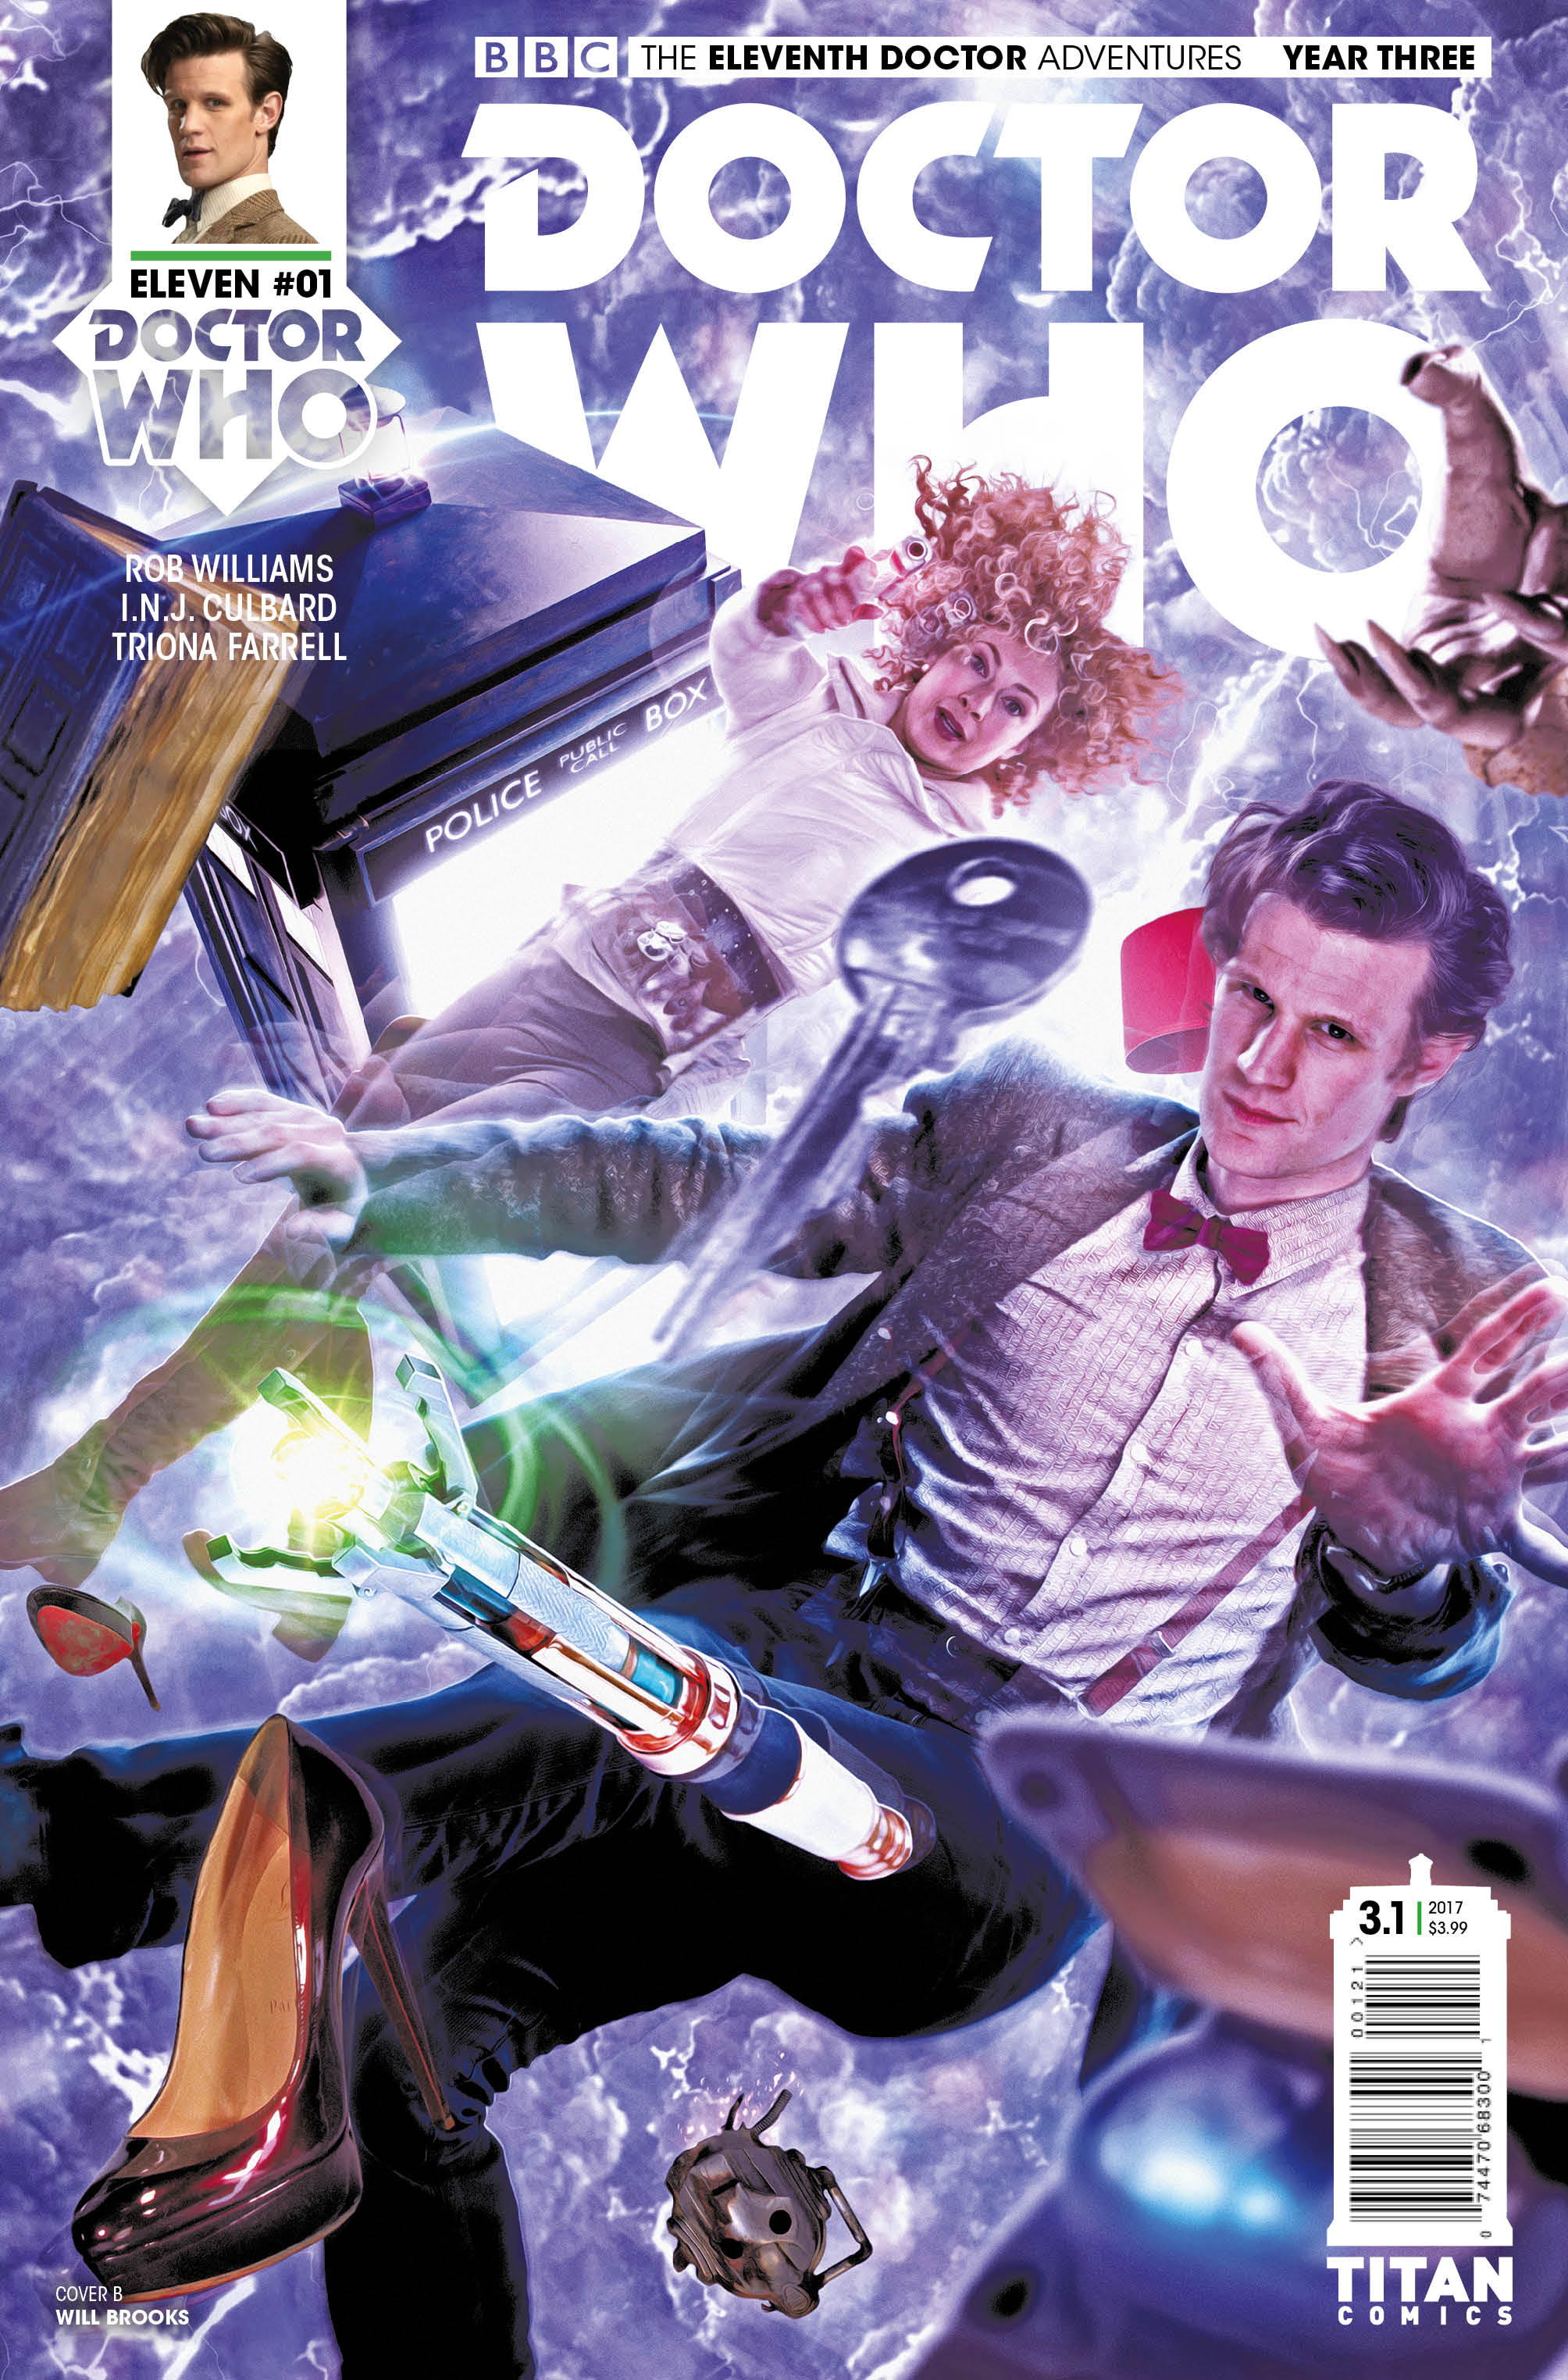 PREVIEW TITAN COMICS Eleventh Doctor Year 3 Starts Jan 11th